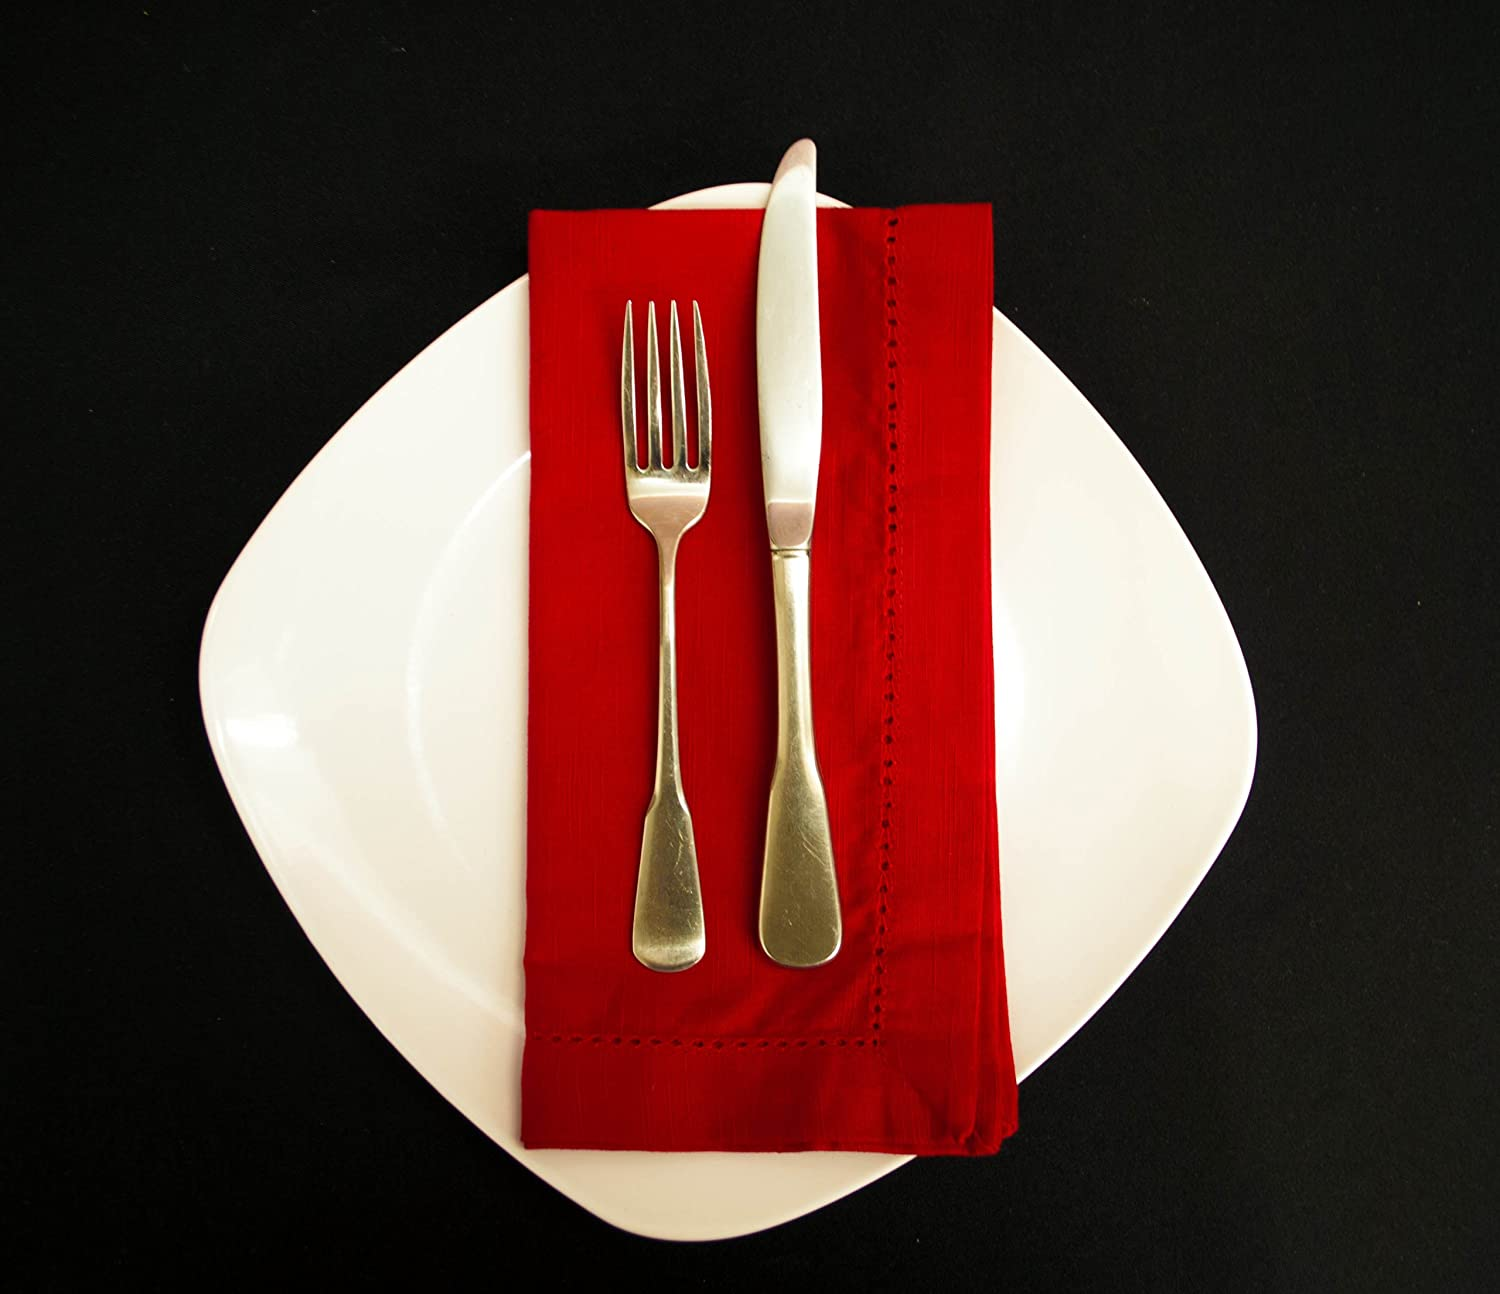 See the gorgeous contrast of the black background with a white plate and red dinner napkin?